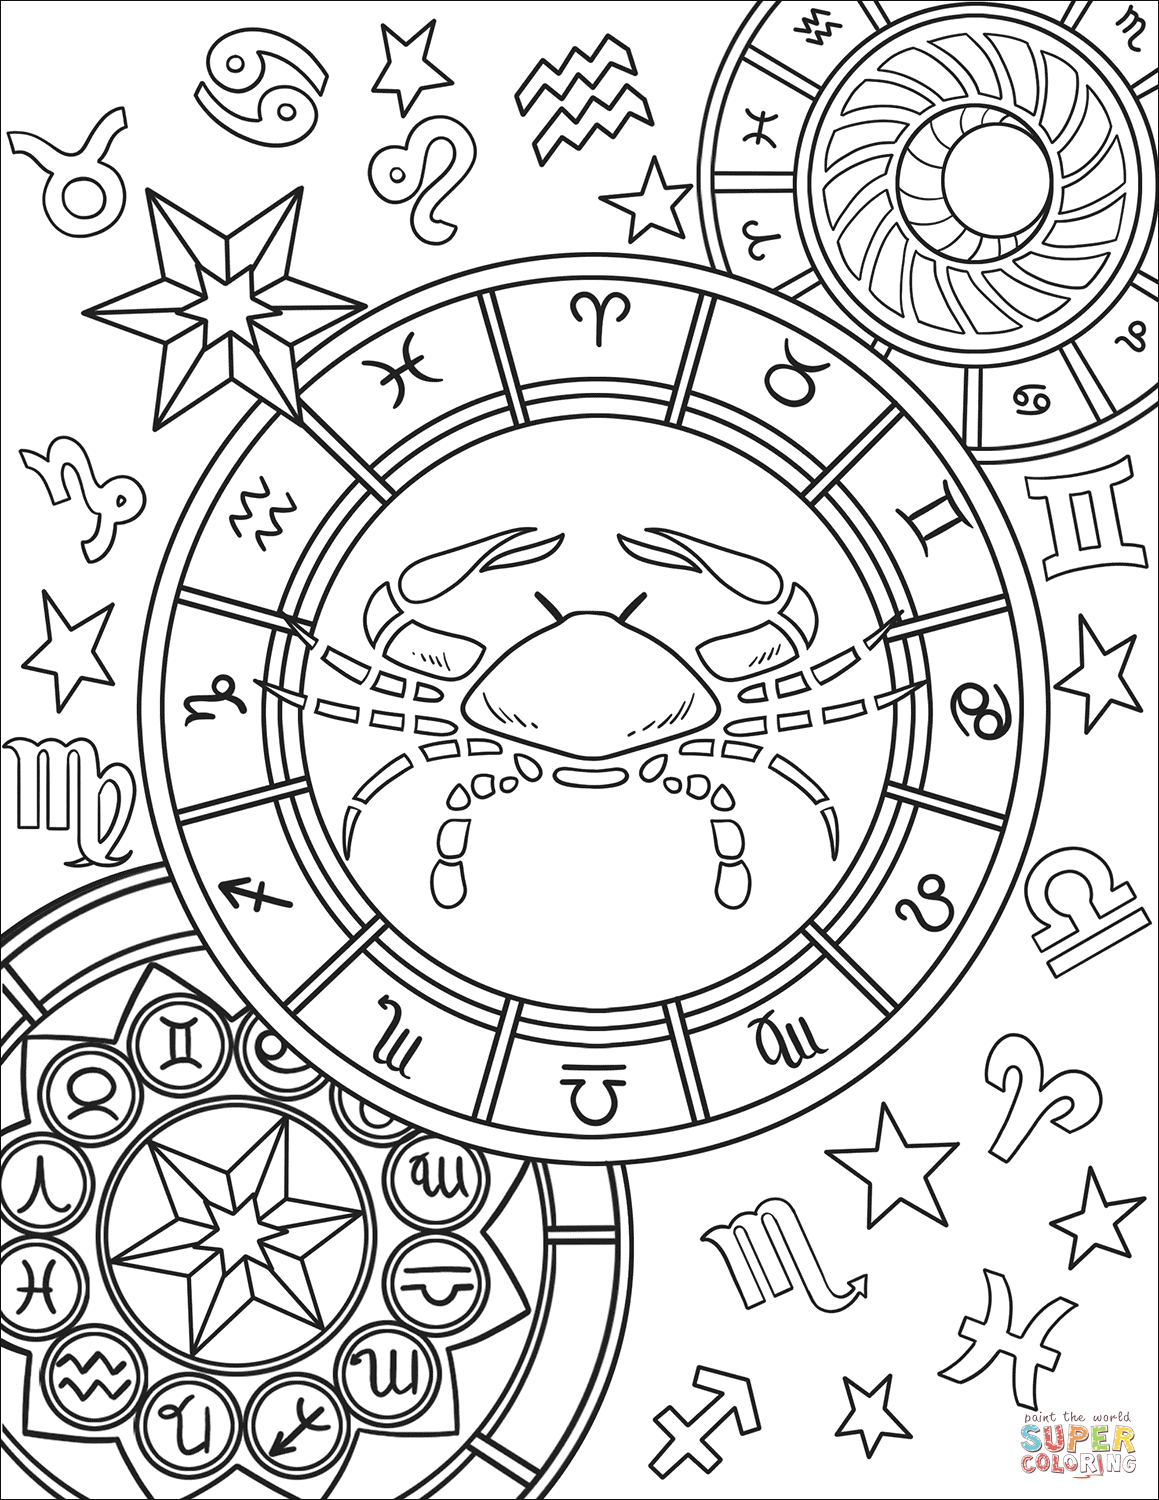 Cancer zodiac sign coloring page free printable coloring pages